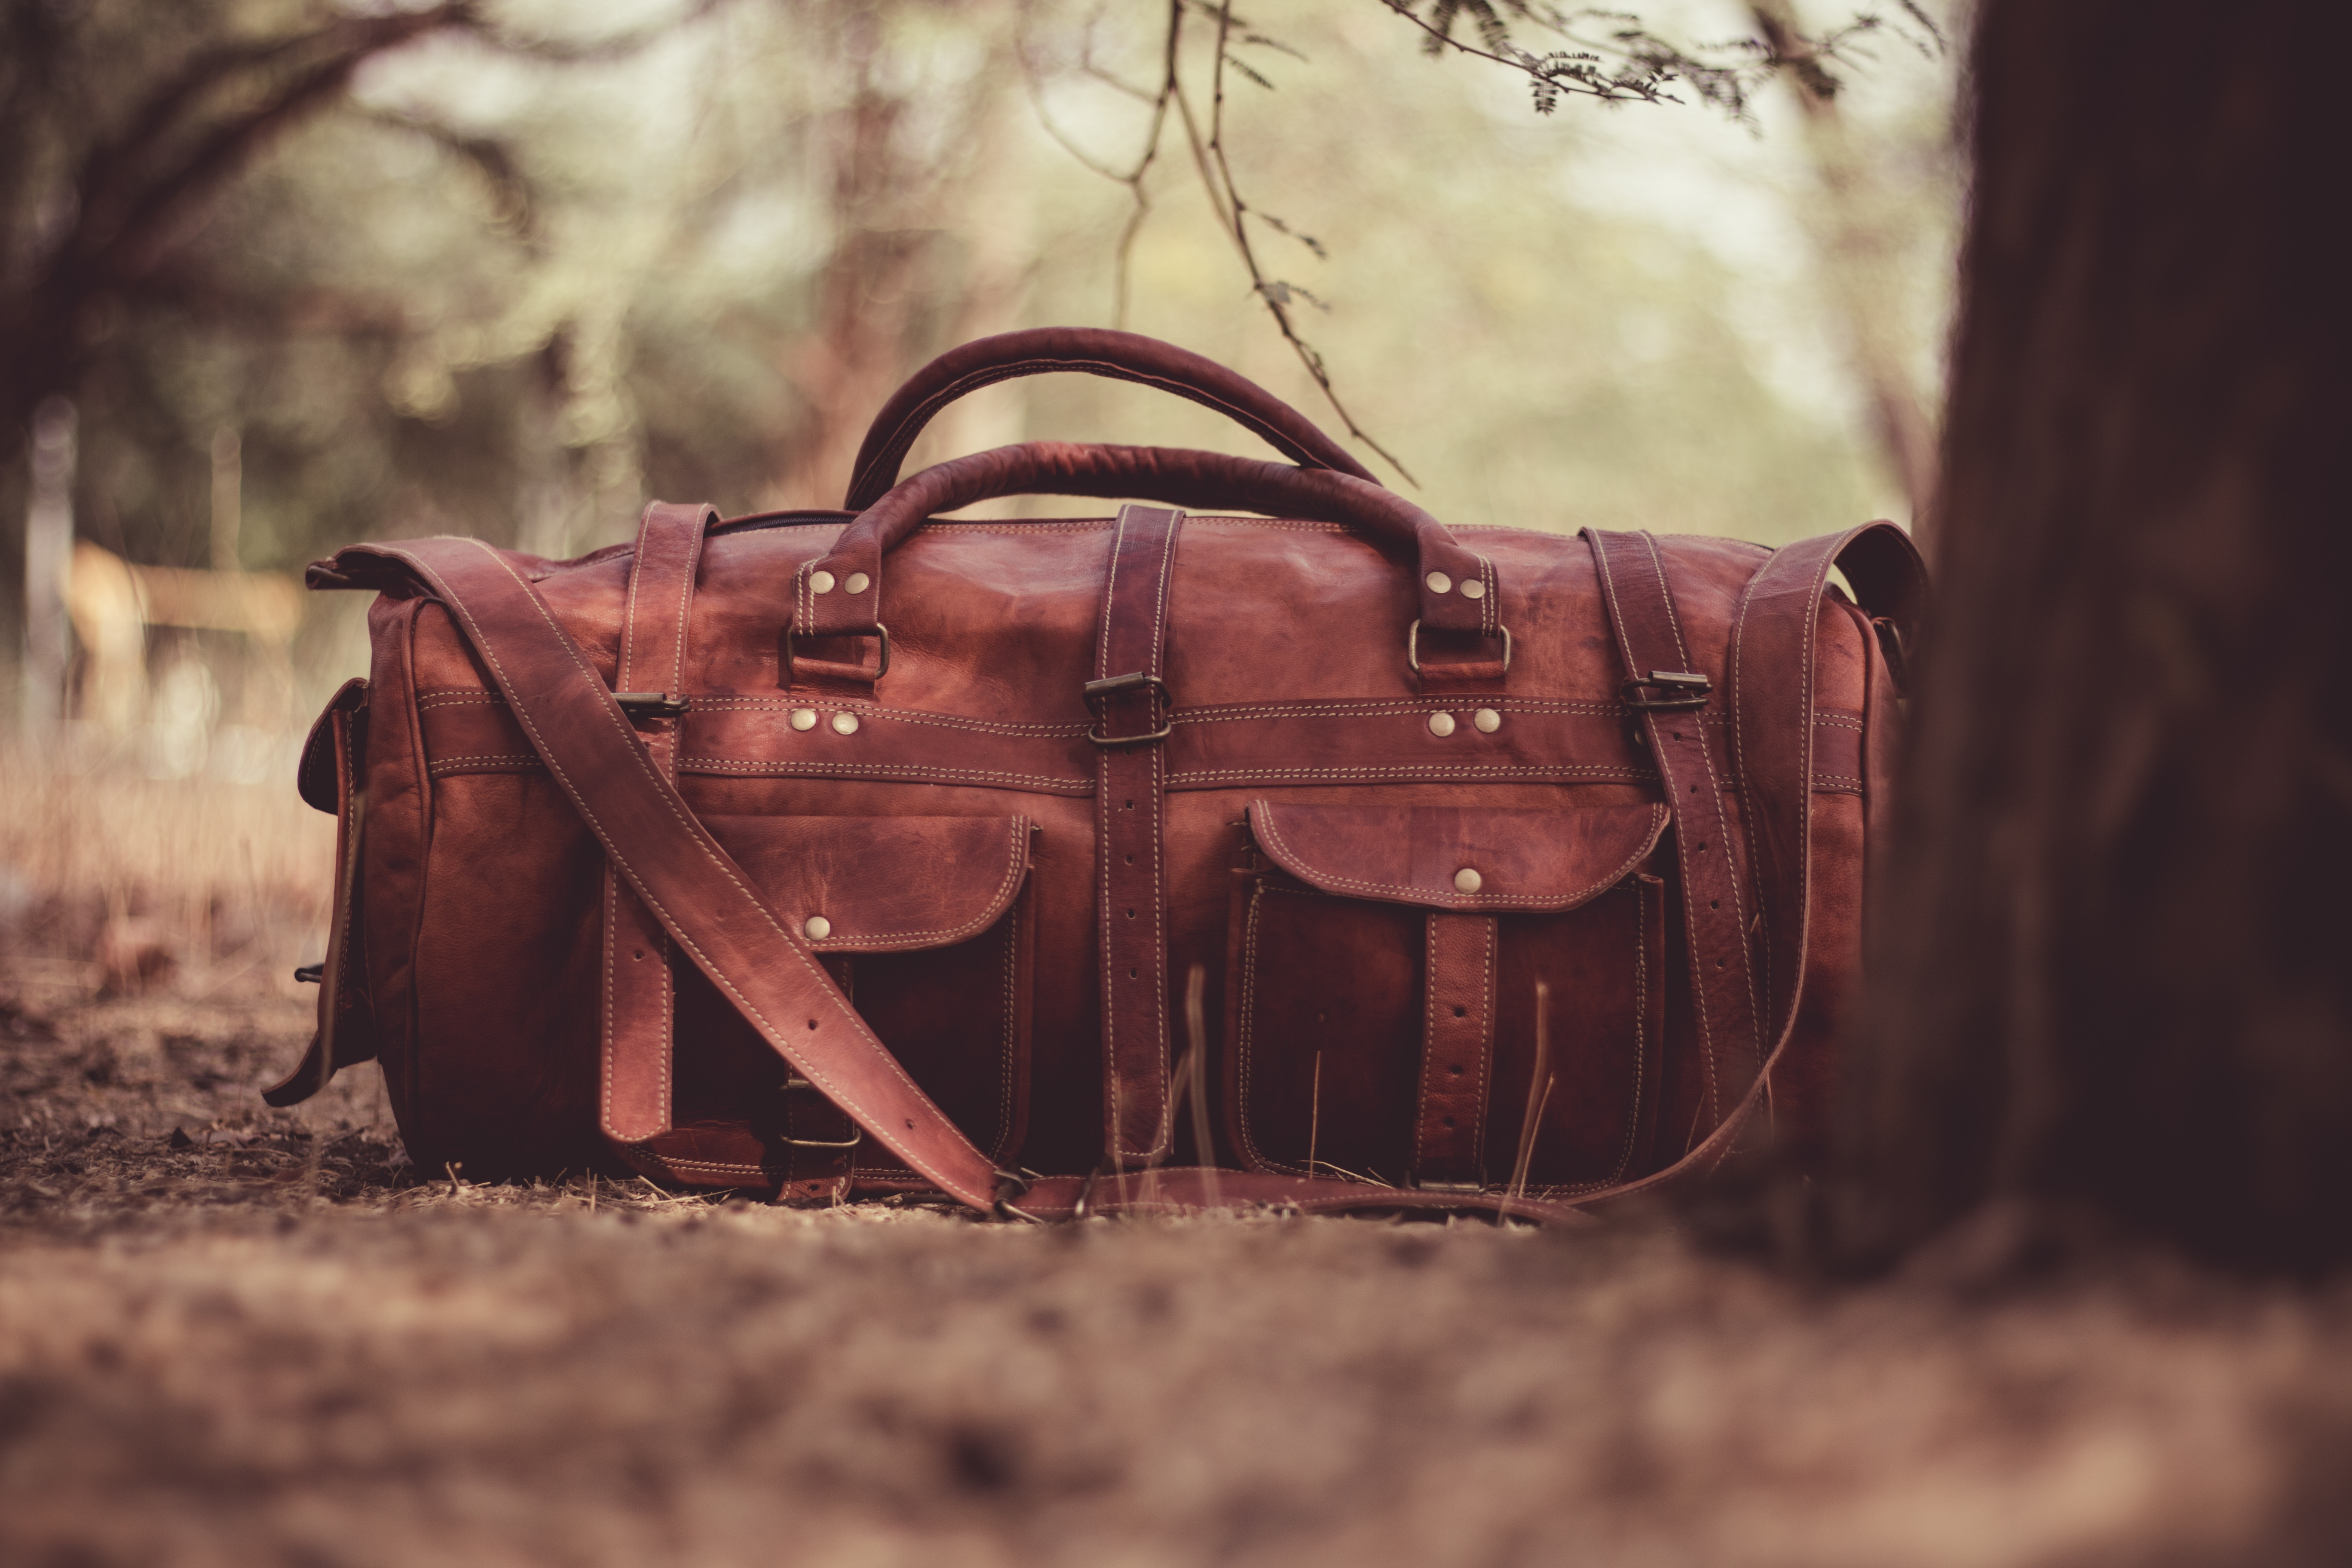 harsh-jadav-163197-unsplash valise.jpg